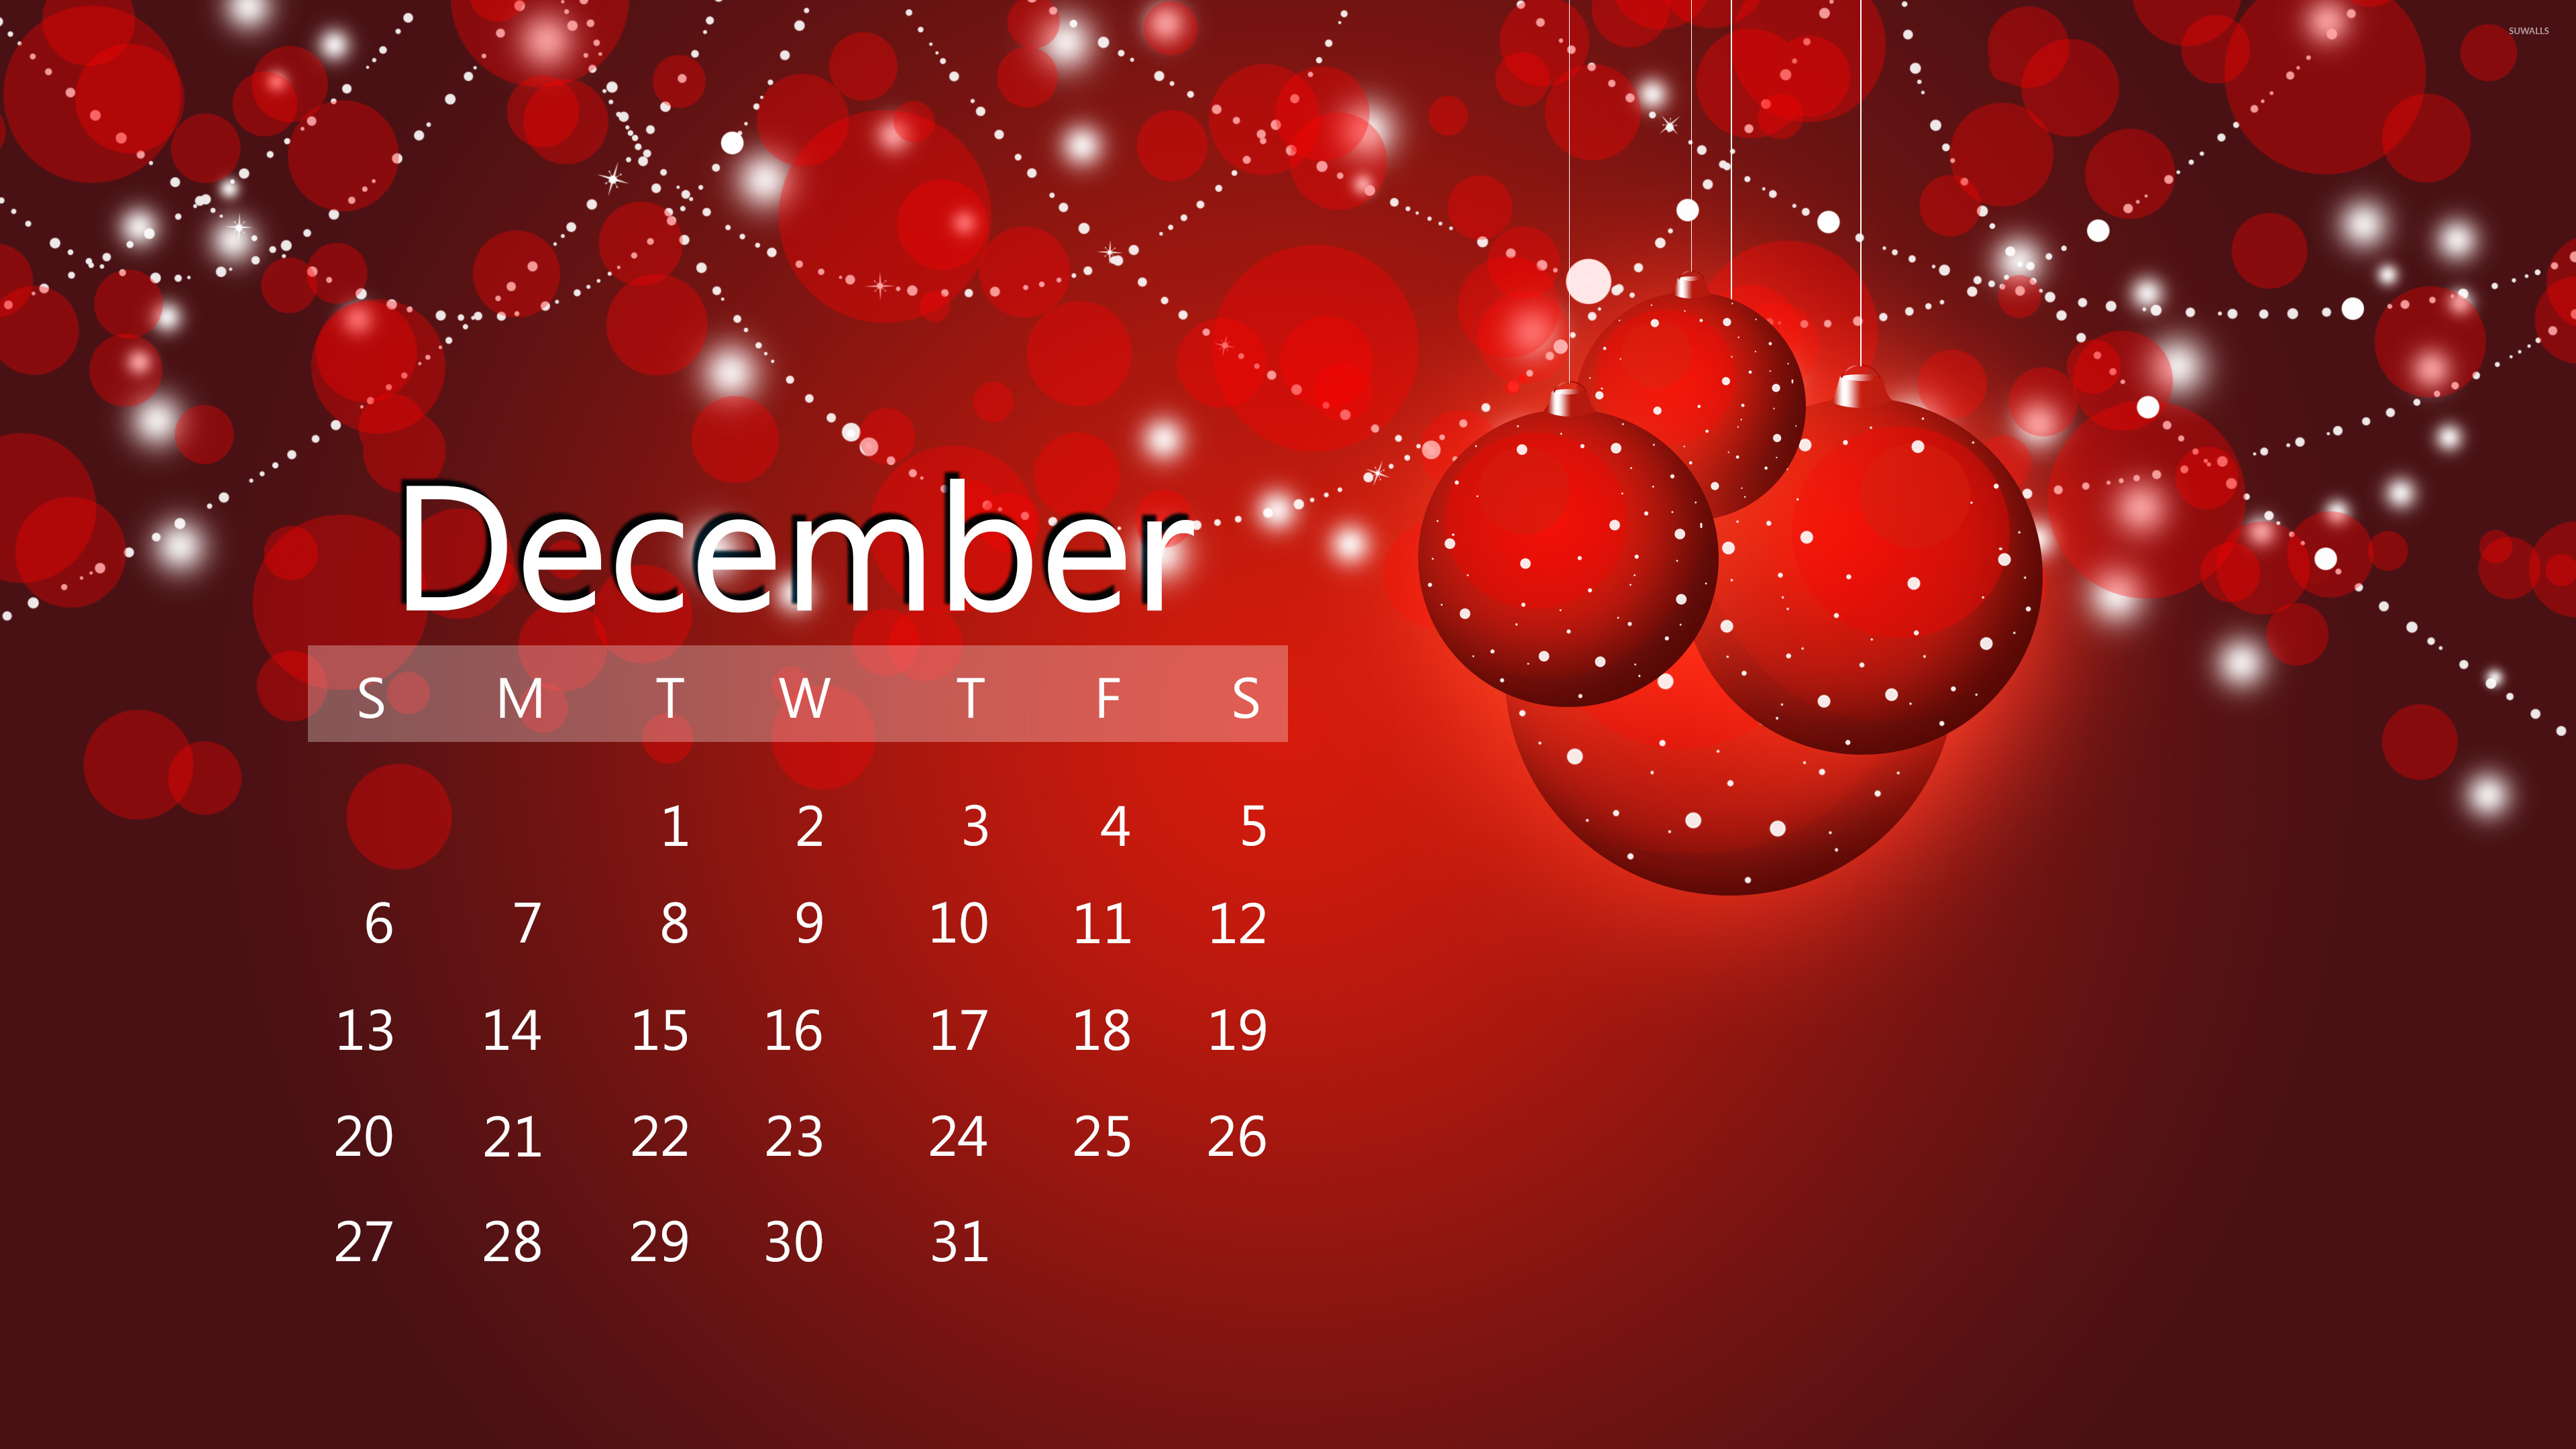 ... December 2013 Desktop Calendar Wallpaper: 2880X1800px, 2560x1440px, ...